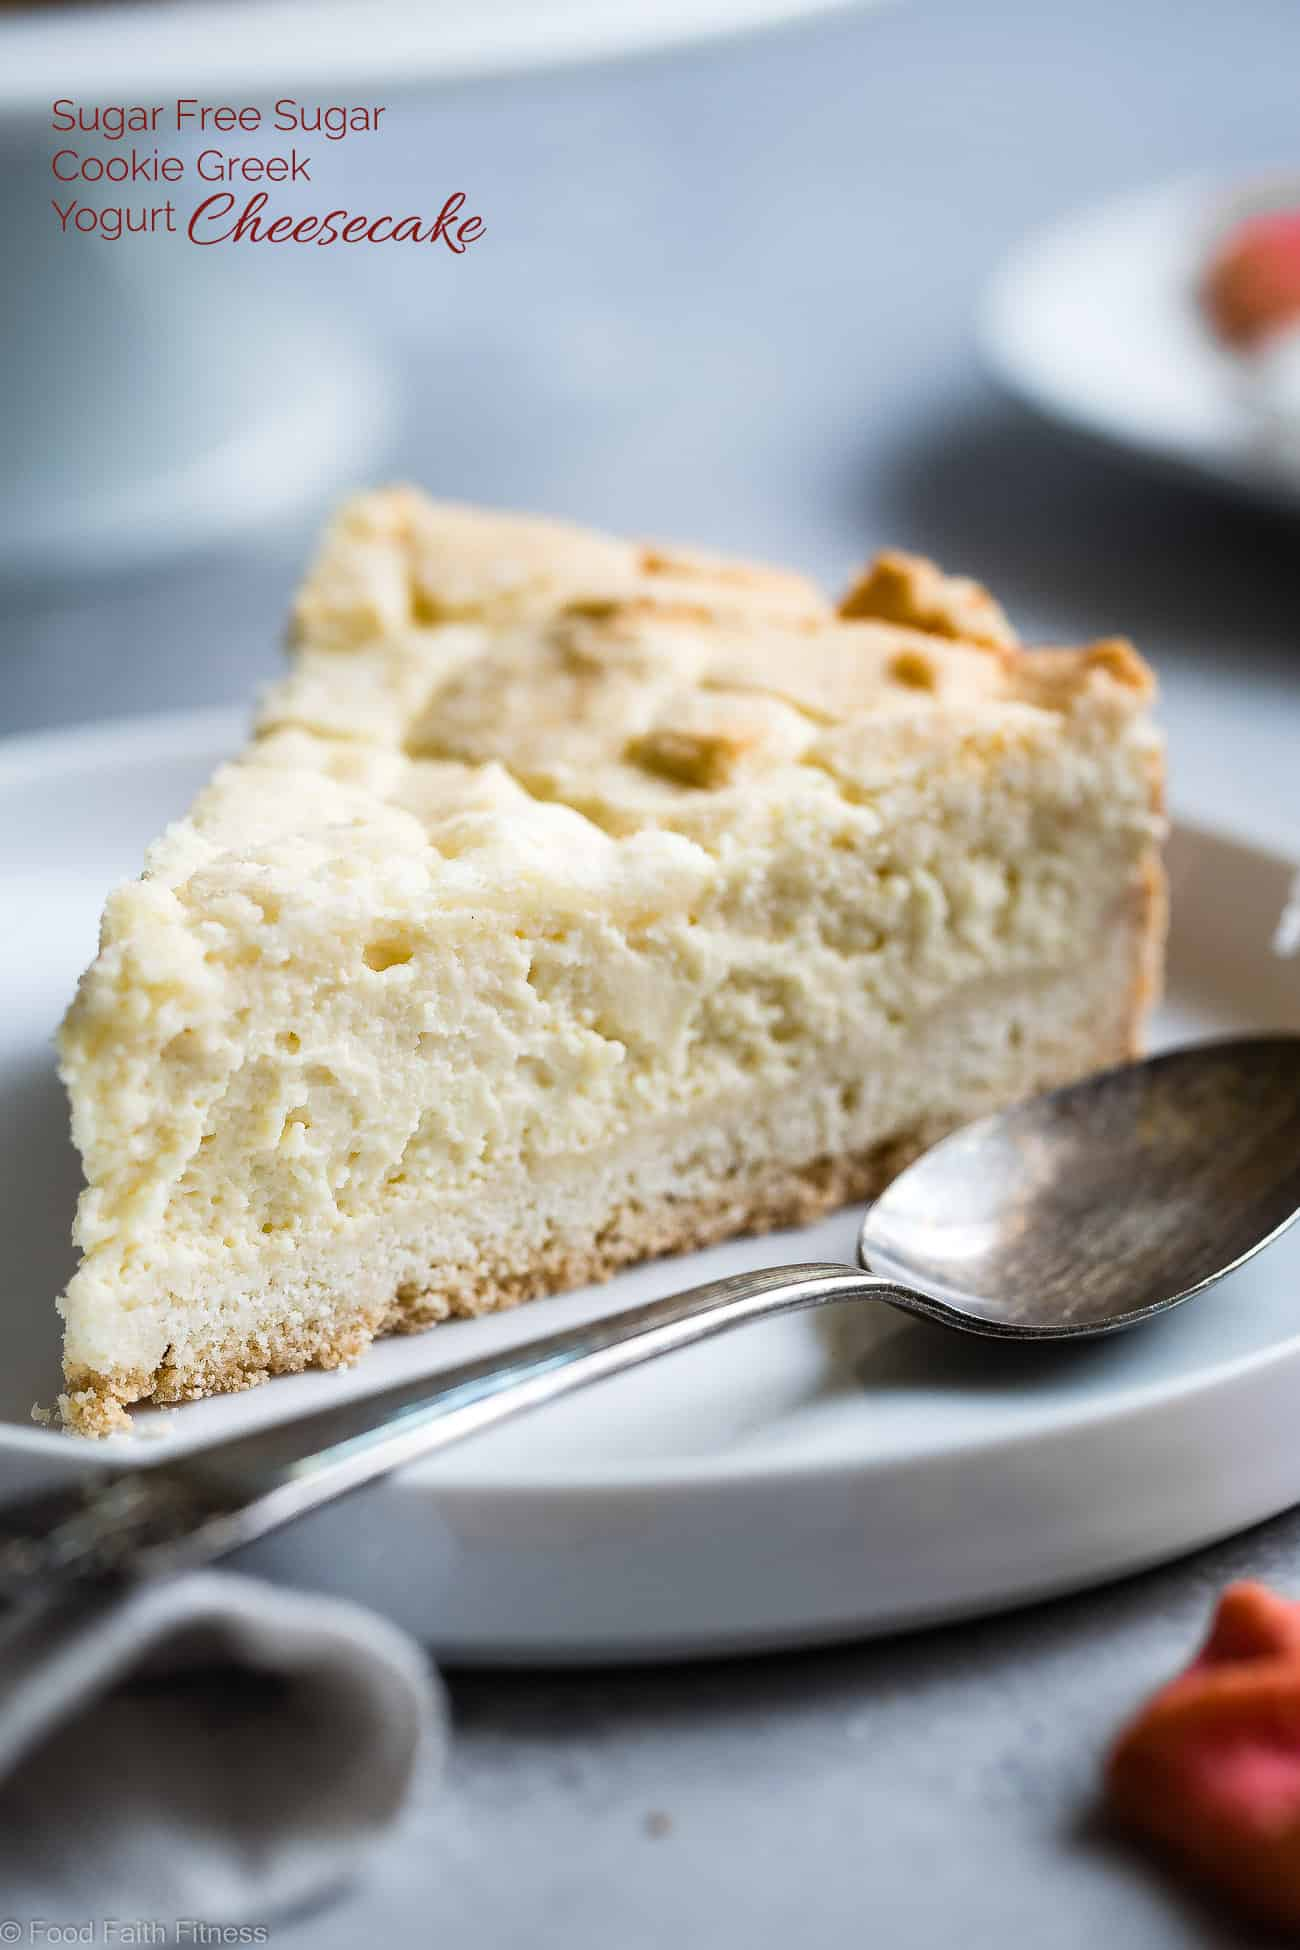 Sugar Free Greek Yogurt Cheesecake -This gluten free cheesecake is an easy dessert that combines 2 Holiday treats ! It's so creamy you won't believe it's healthy, sugar free and only 235 calories! | Foodfaithfitness.com | @FoodFaithFit